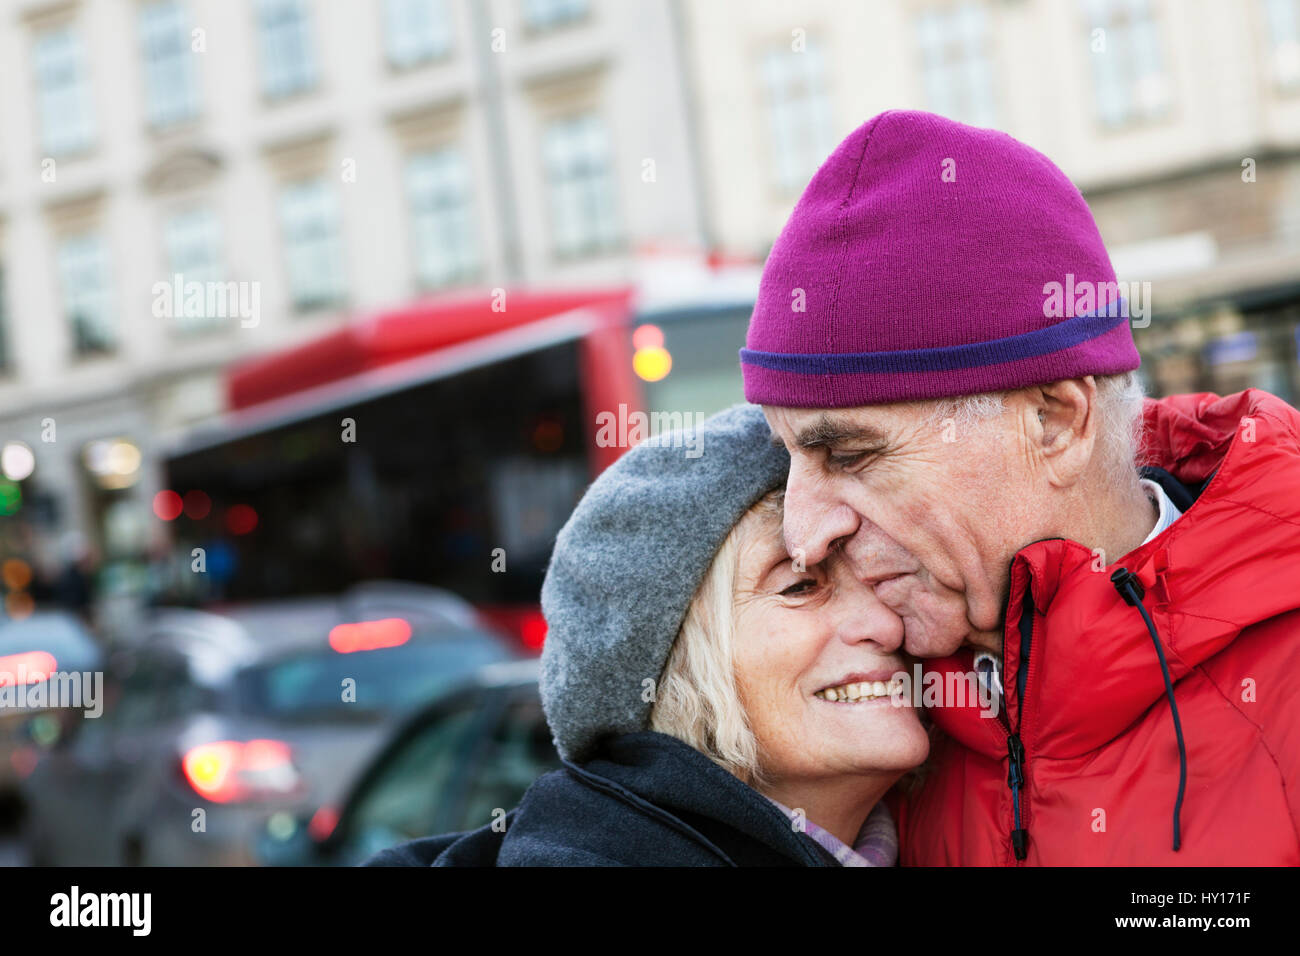 La Suède, Stockholm, Södermalm, senior couple hugging in street Photo Stock